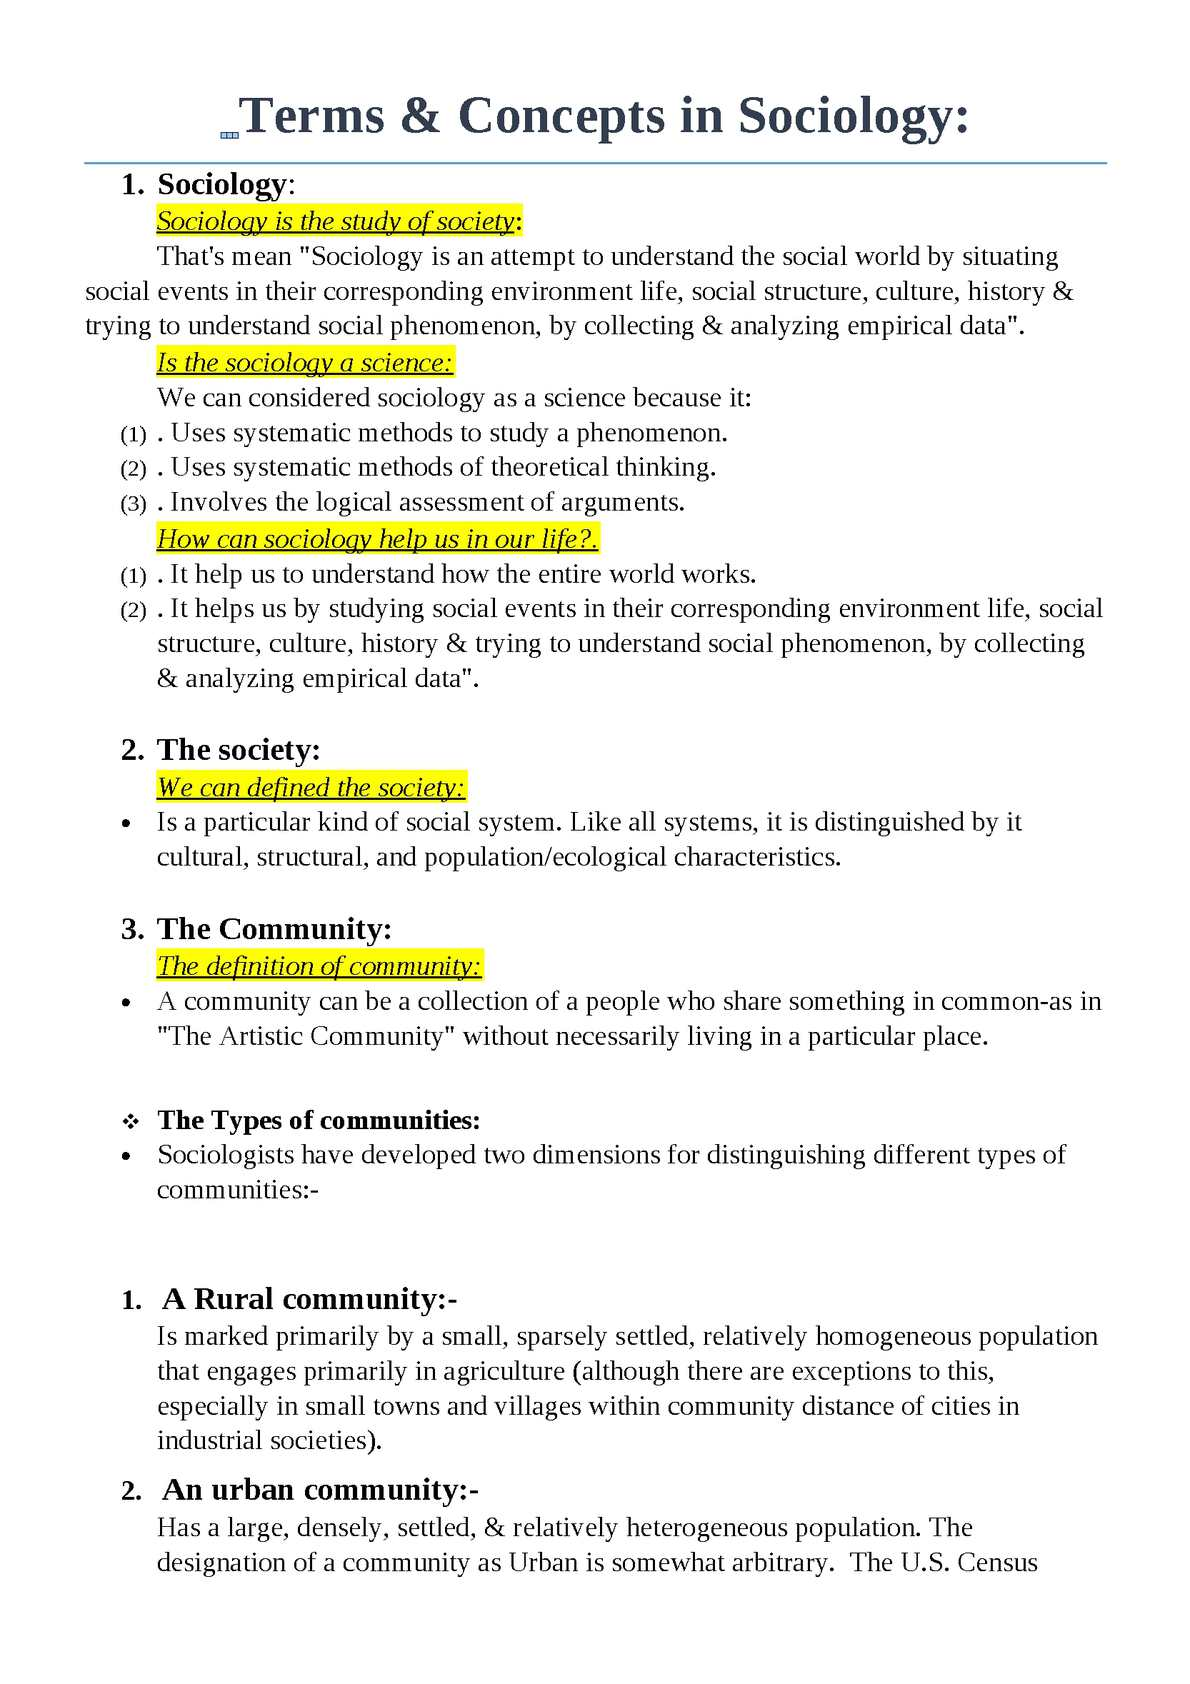 Sociology: Definition and Overview of the Field